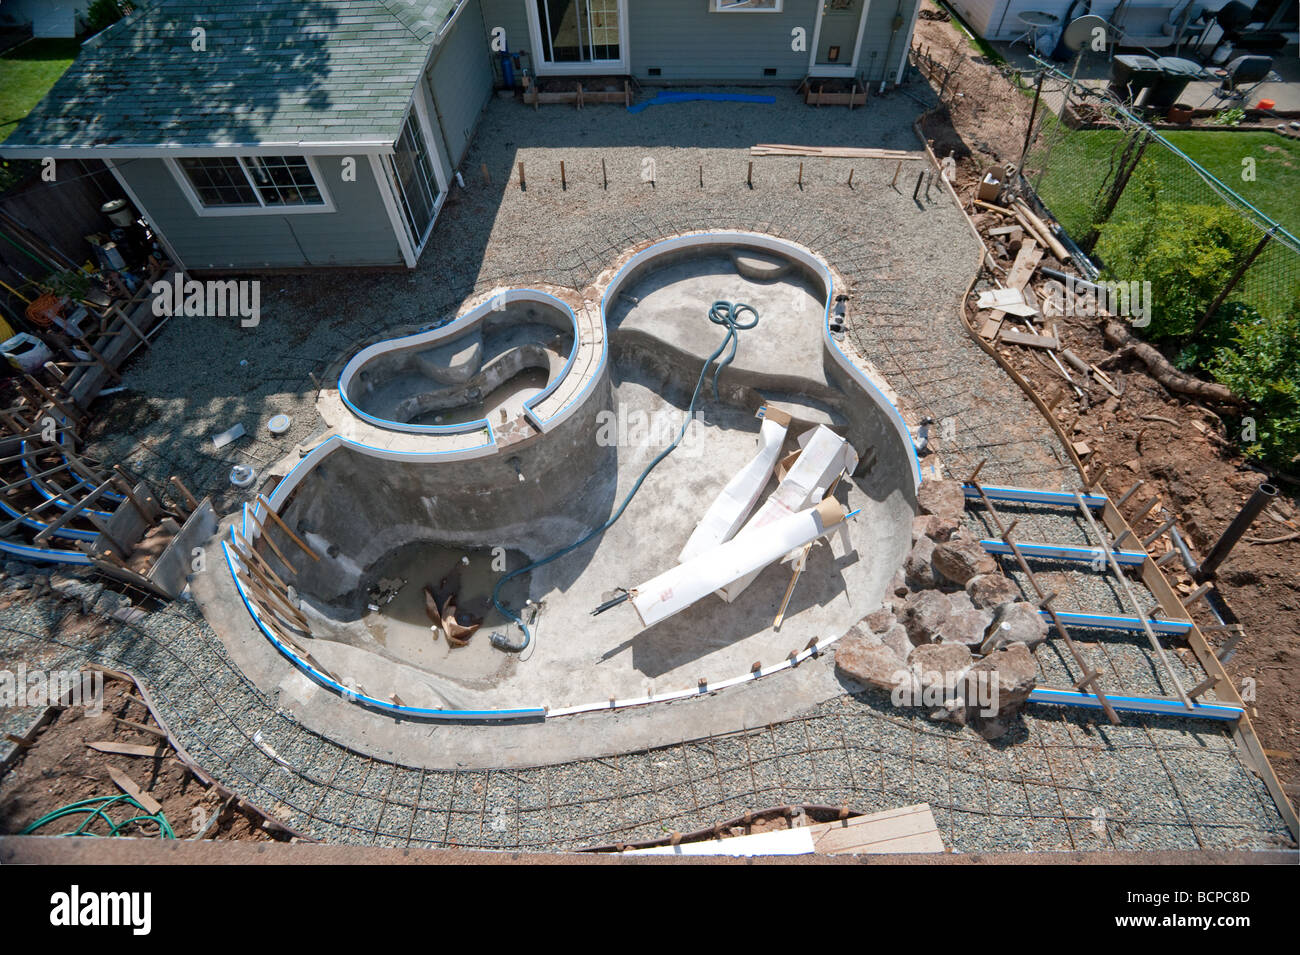 High Quality Backyard Swimming Pool Under Construction